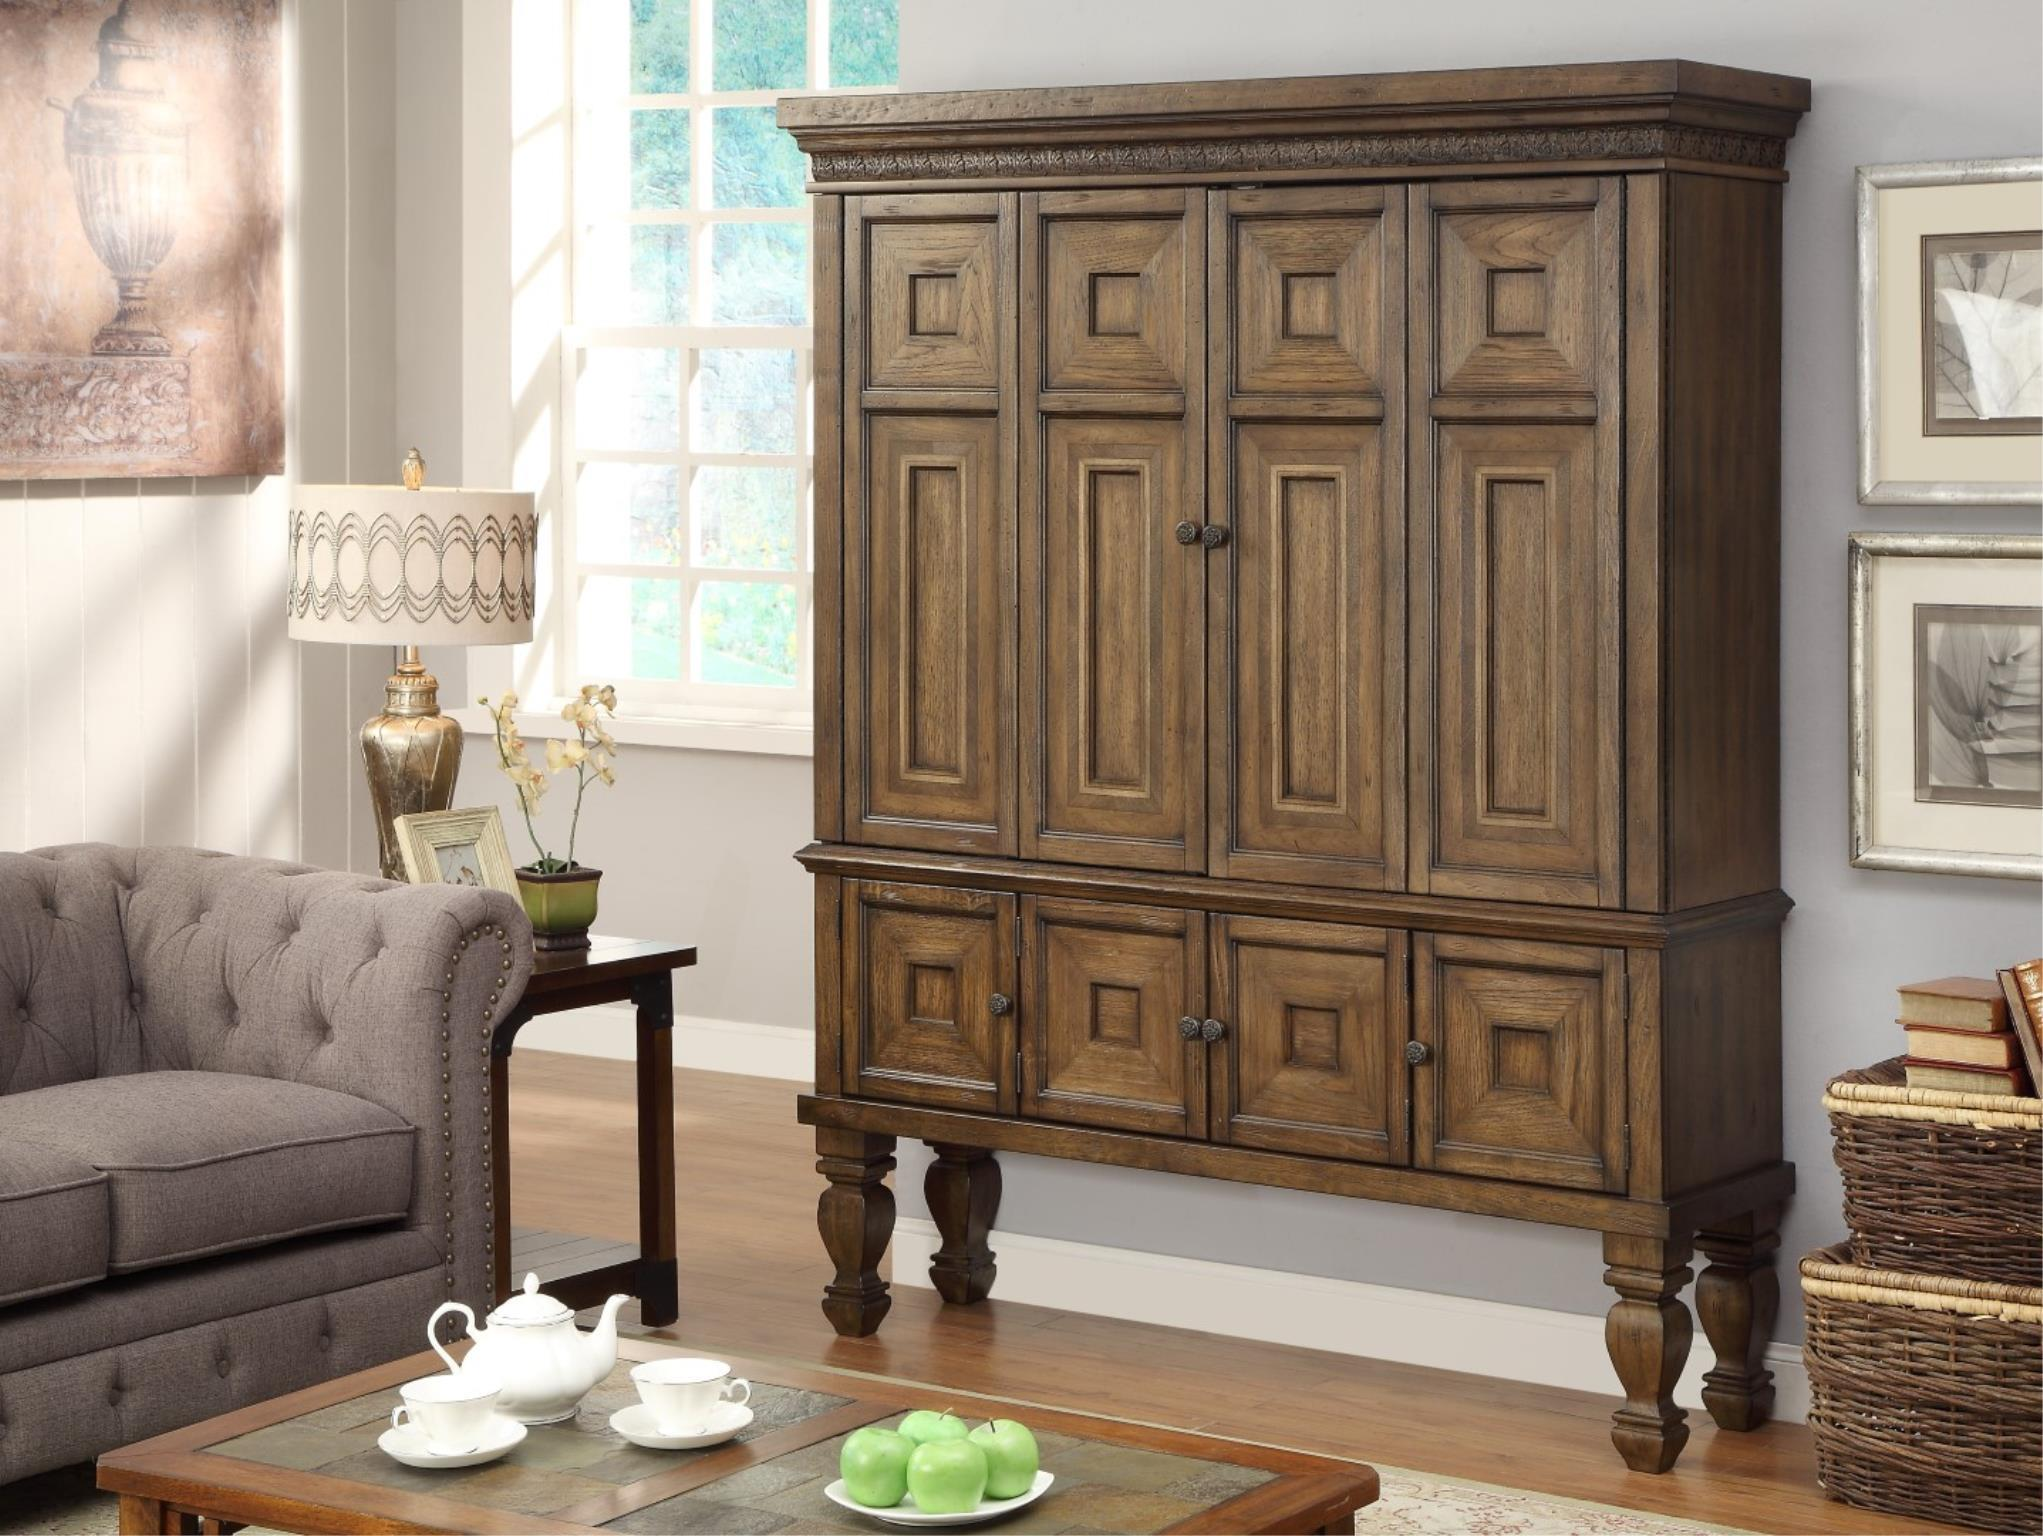 Morris Home Furnishings Valona - Valona 2-Piece Entertainment Armoire - Item Number: 256255007